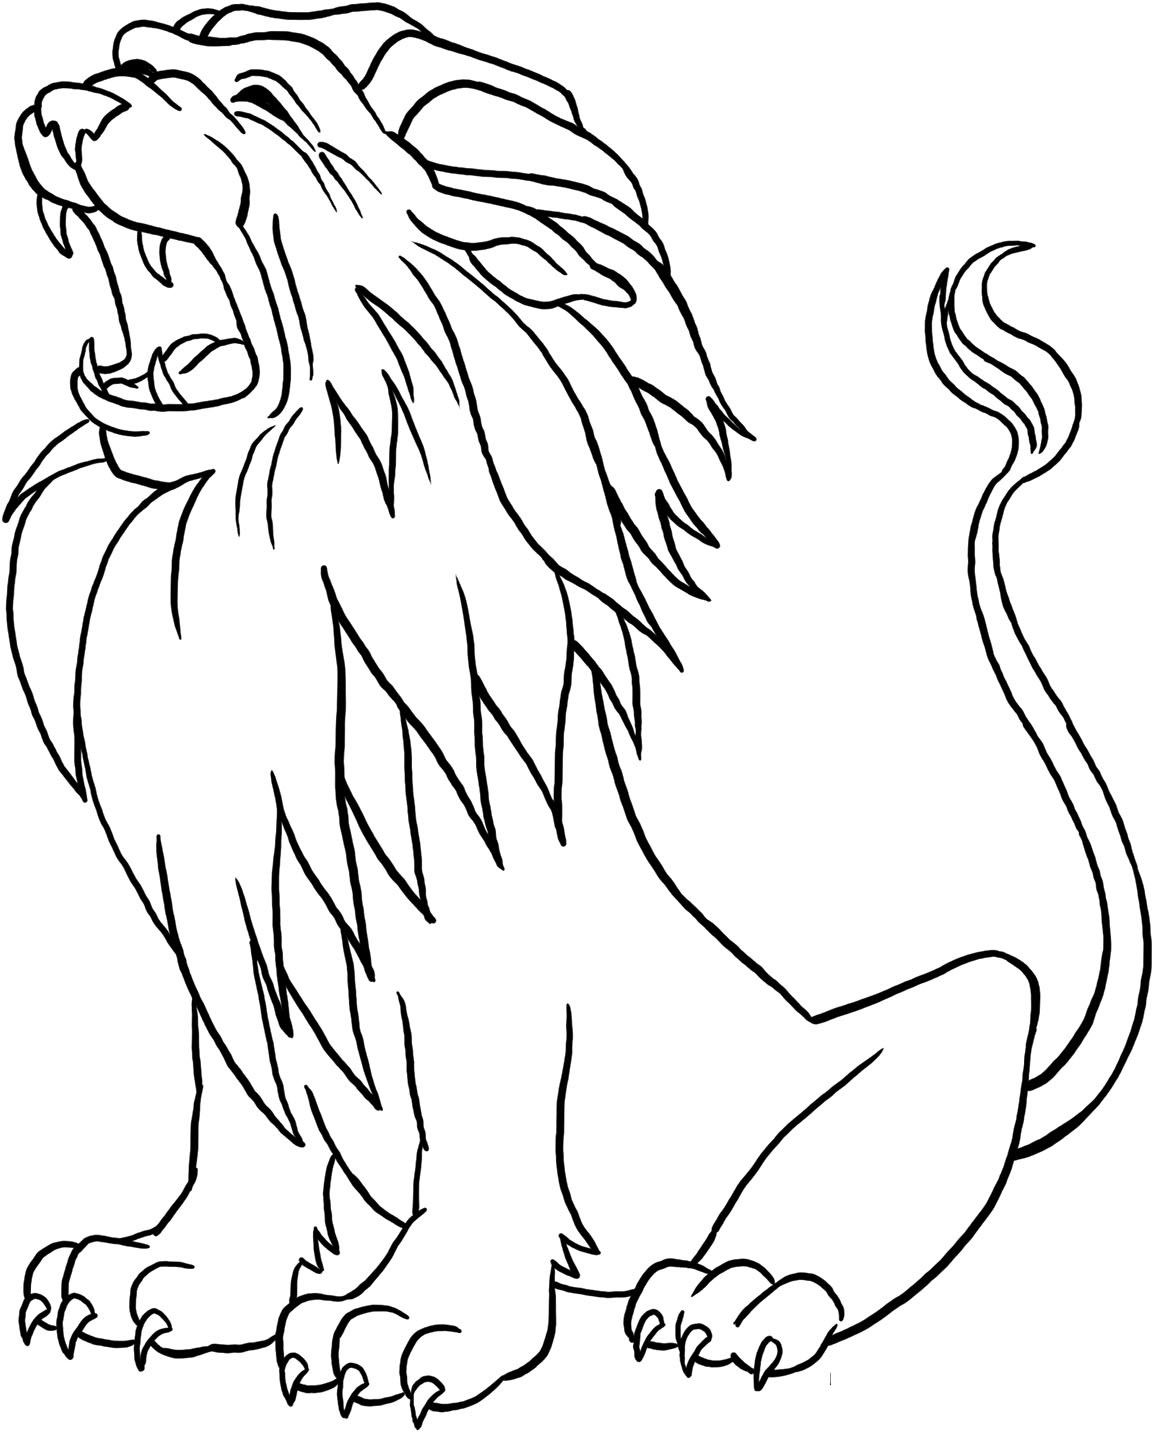 blank cartoon pictures for colouring blank cartoon images for colouring coloring wall pictures colouring for cartoon blank